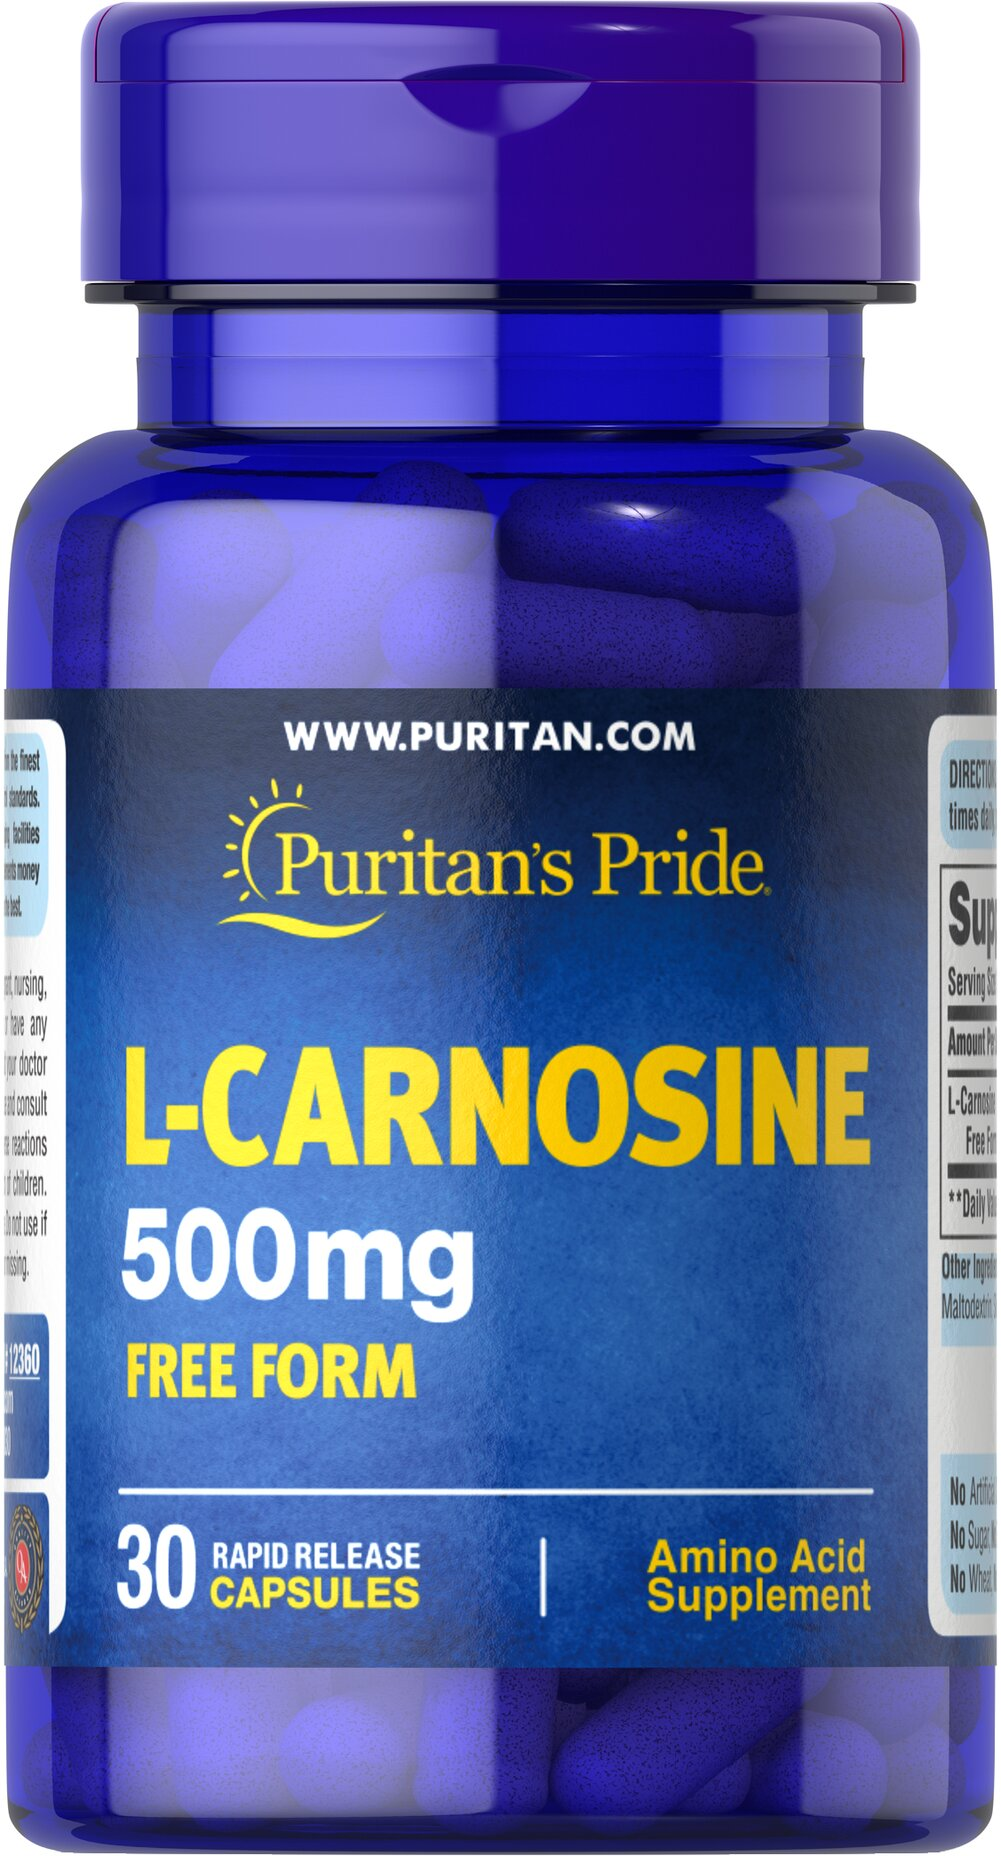 L-Carnosine 500 mg <p>L-Carnosine, one of the most abundant water-soluble nitrogen compounds found in muscle, supports cognitive and nervous system health.** Carnosine can have a positive effect on the brain's learning process.** In addition, L-Carnosine is also involved in the chelation of some heavy metals.**</p><br /> 30 Capsules 500 mg $22.99